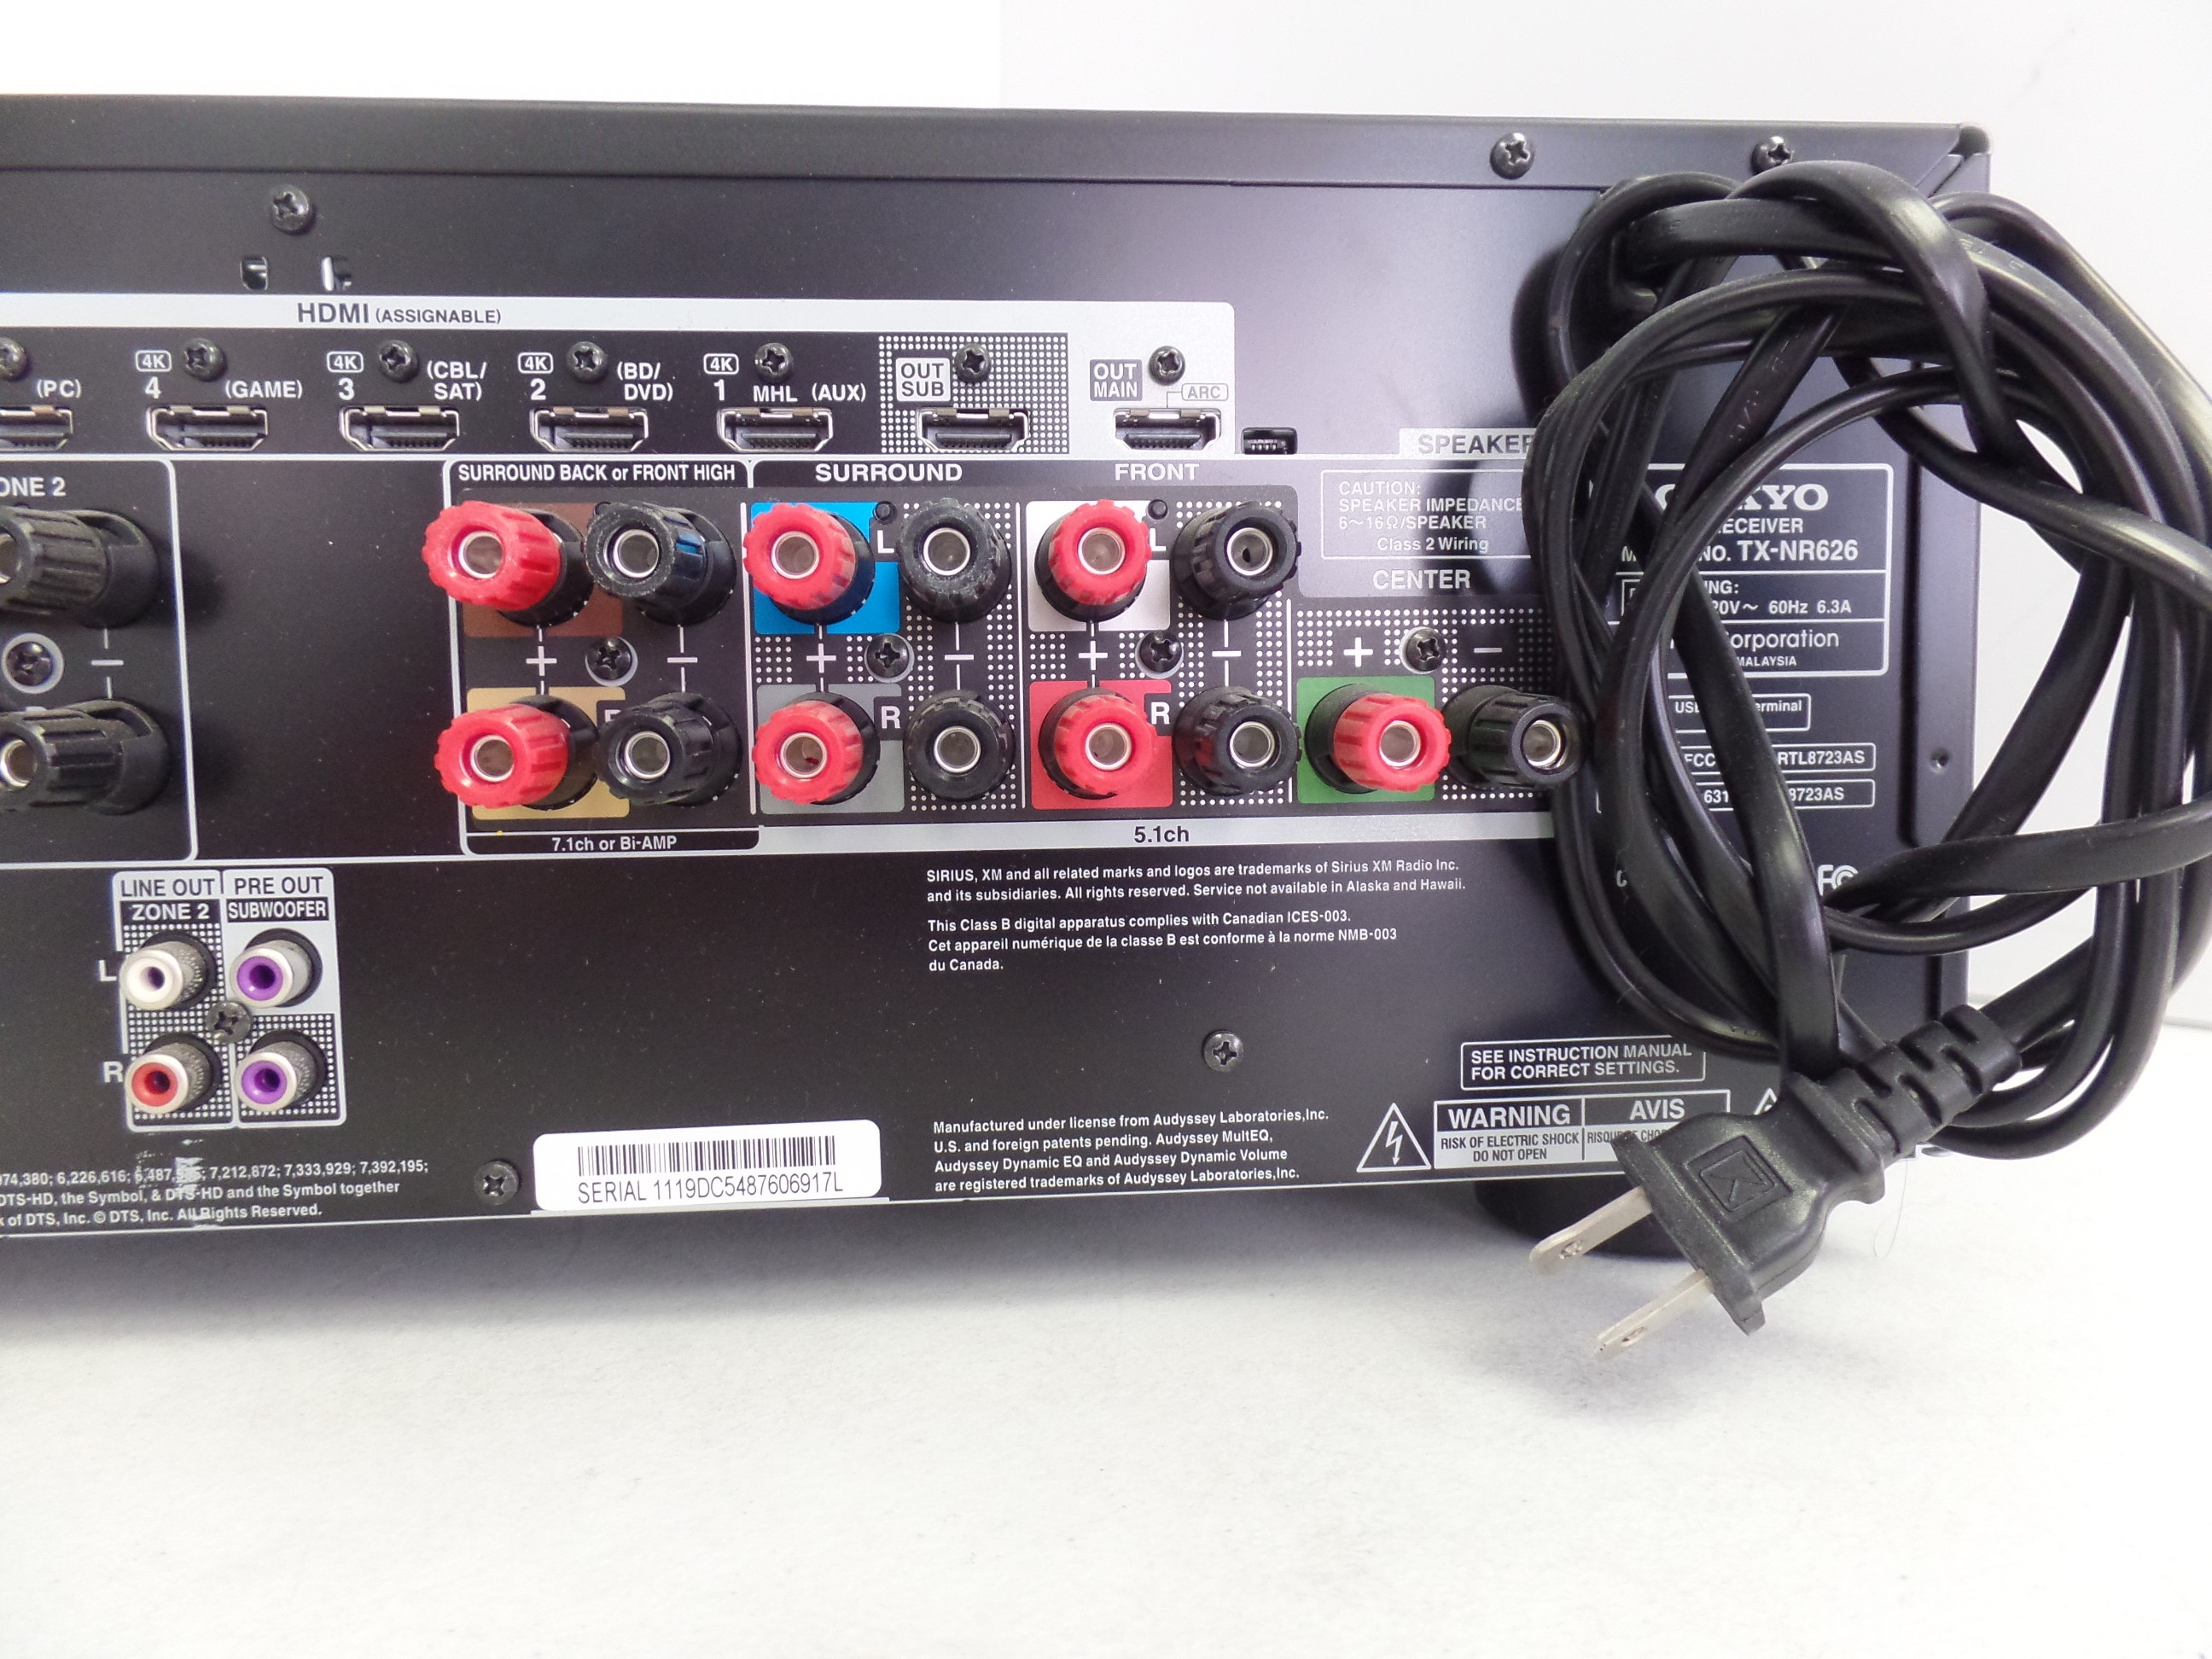 Home Theater 7 2 AV Receiver Onkyo TX-NR626 for parts #14